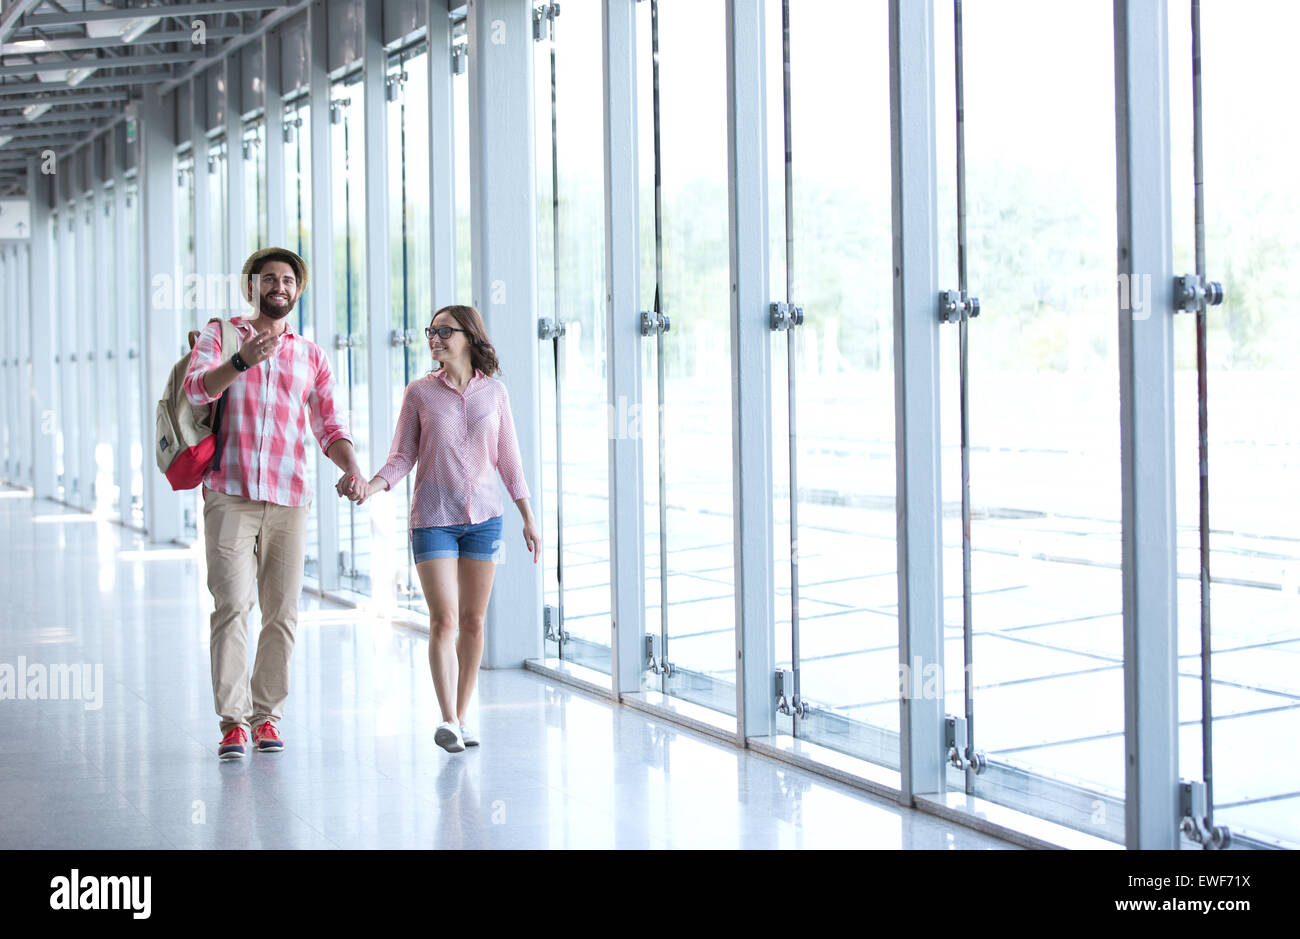 Full-length of couple holding hands while walking at covered passage - Stock Image